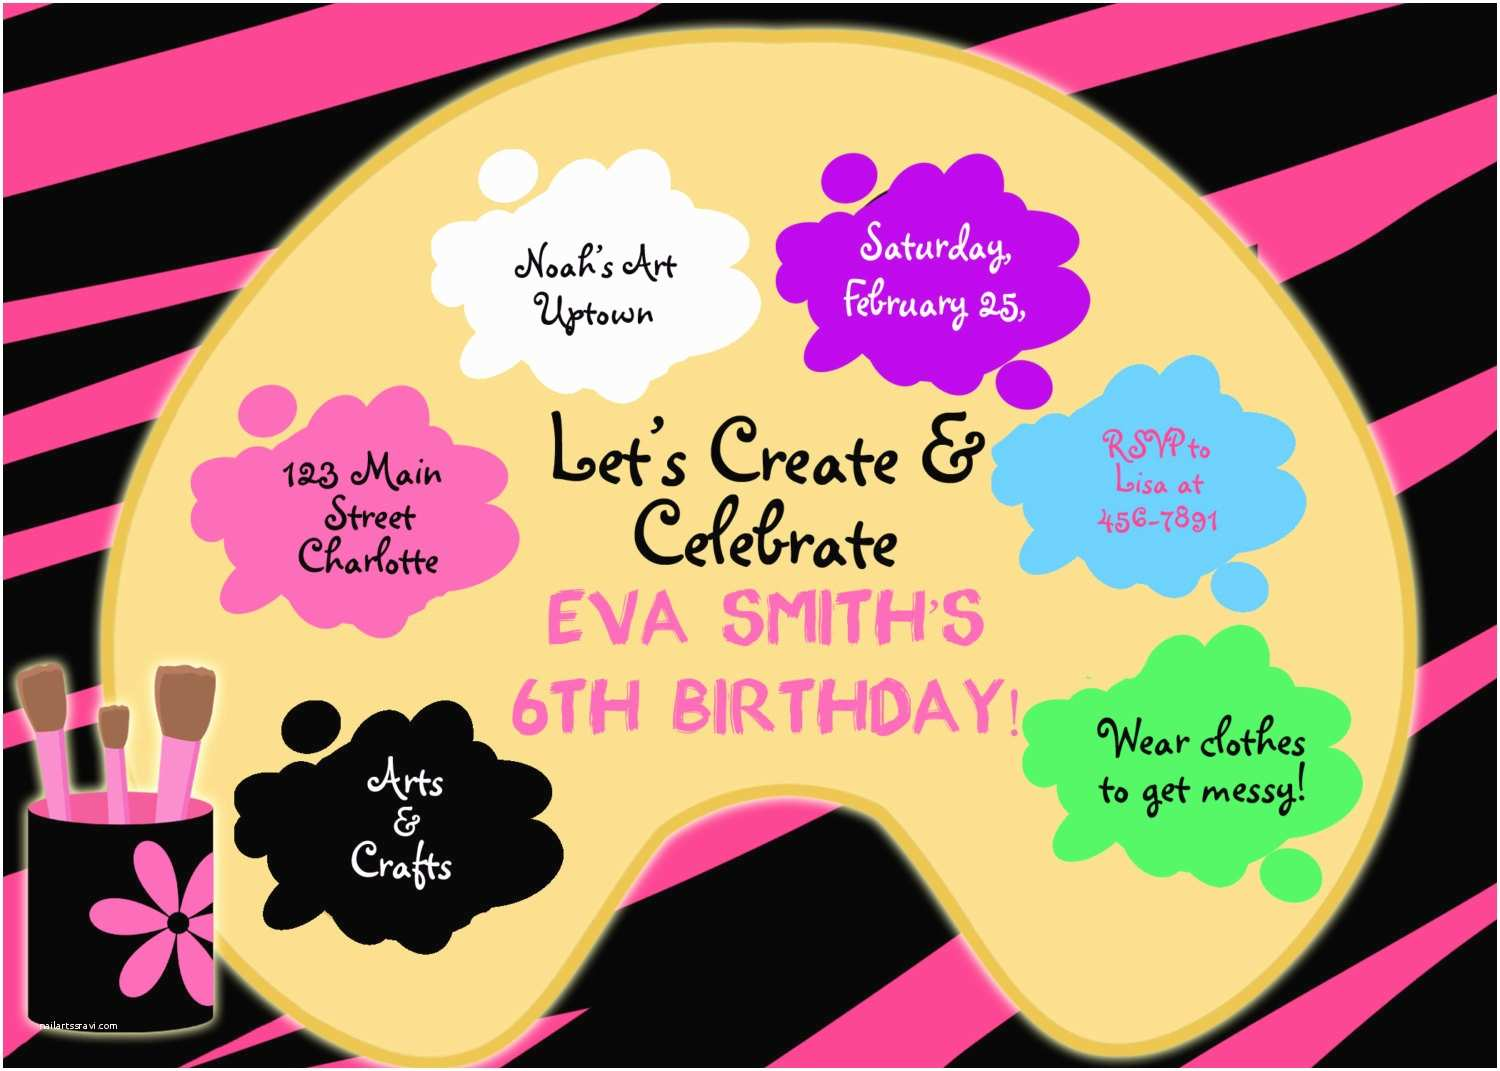 Painting Birthday Party Invitations Paint Party Birthday Invitation Art Party by thebutterflypress